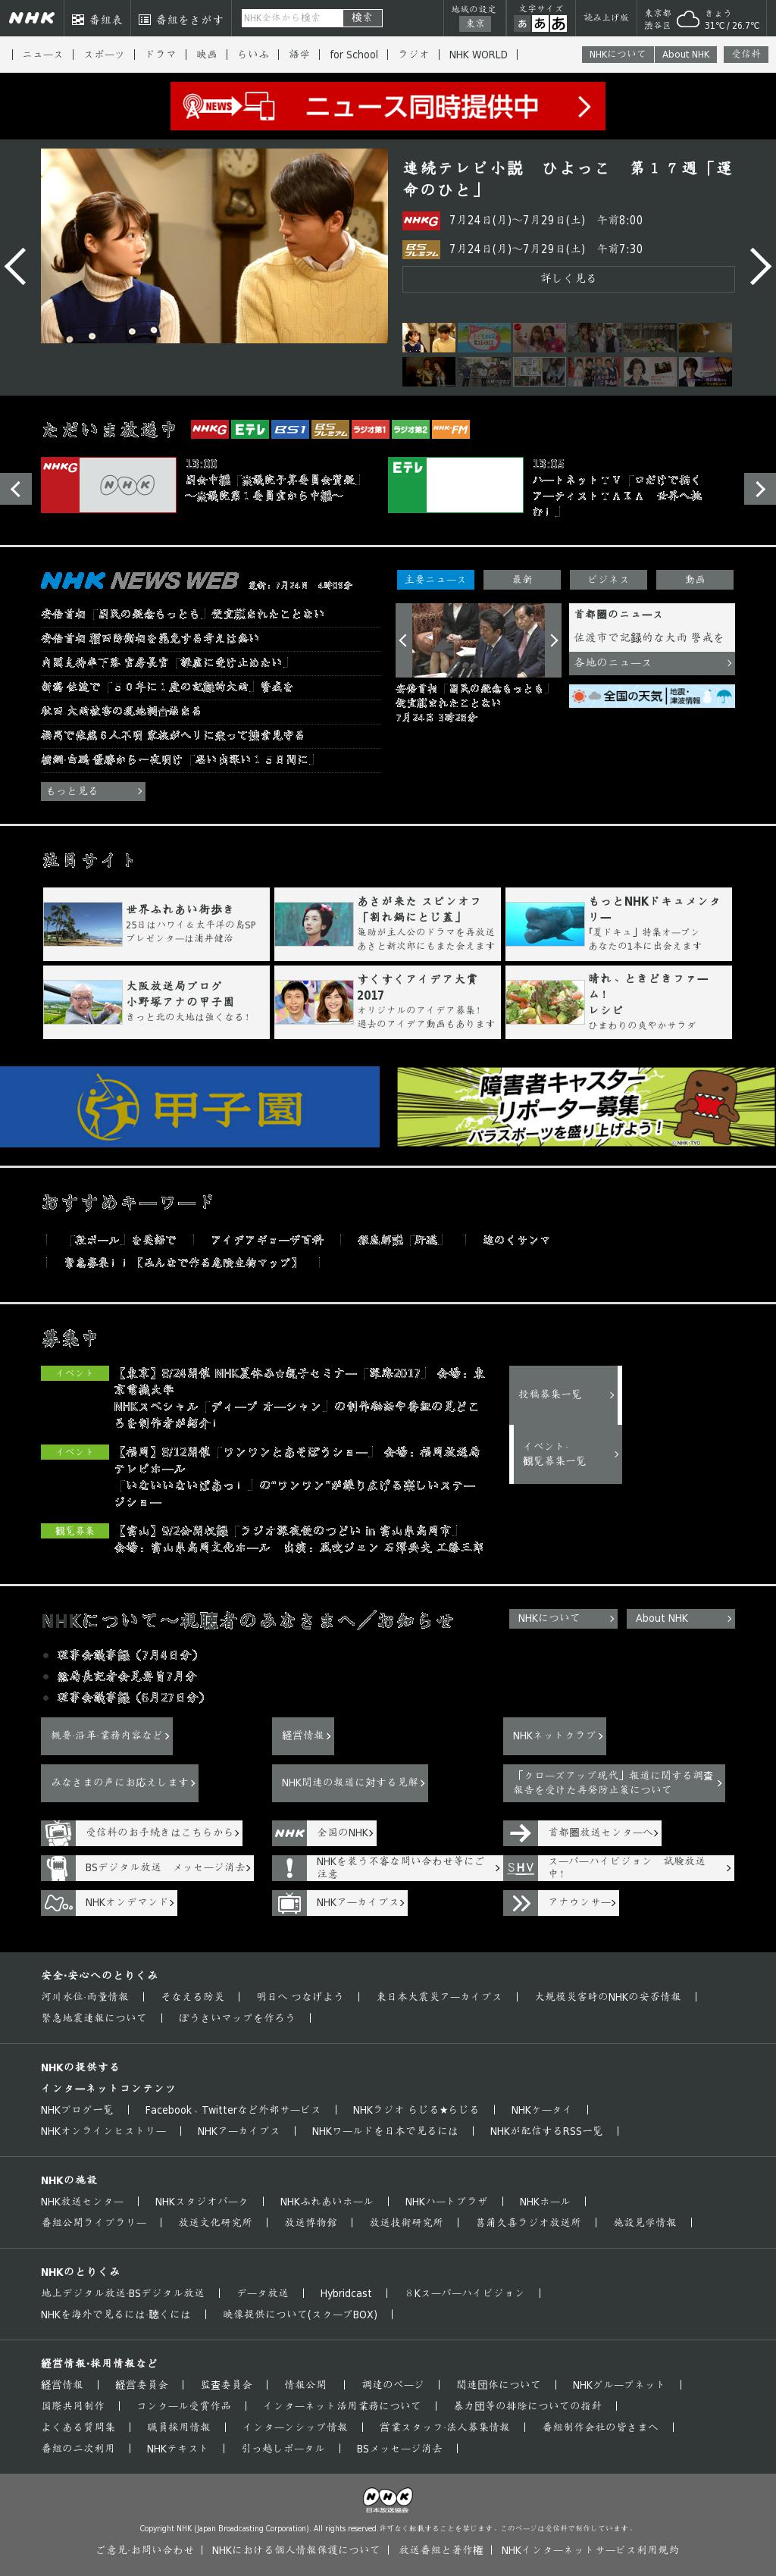 NHK Online at Monday July 24, 2017, 4:12 a.m. UTC